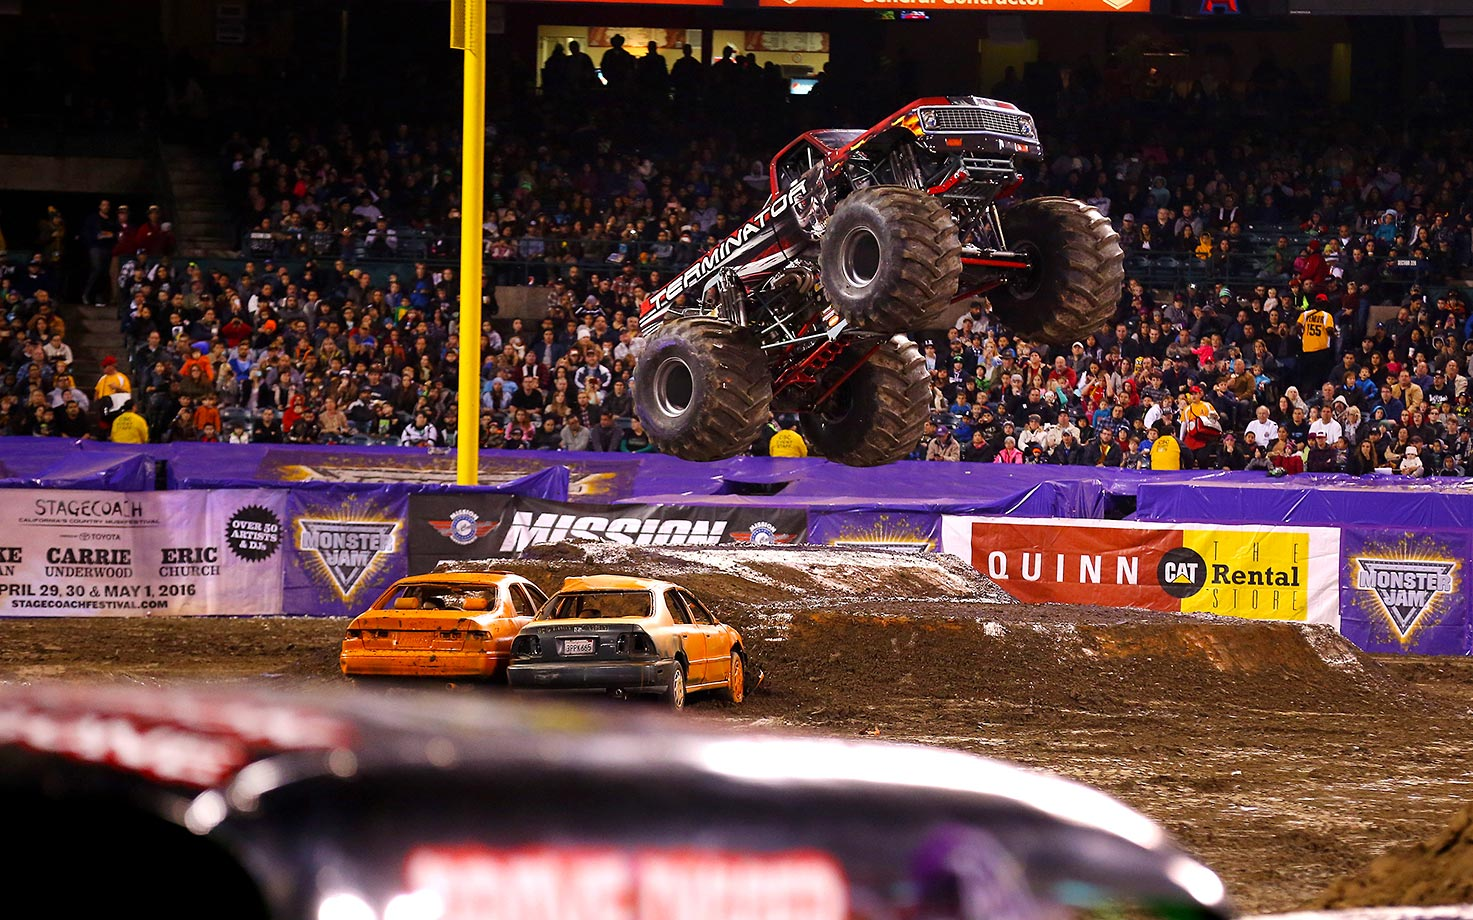 Monster Truck 'Terminator' pleased the crowd with this jump during Monster Jam competition.